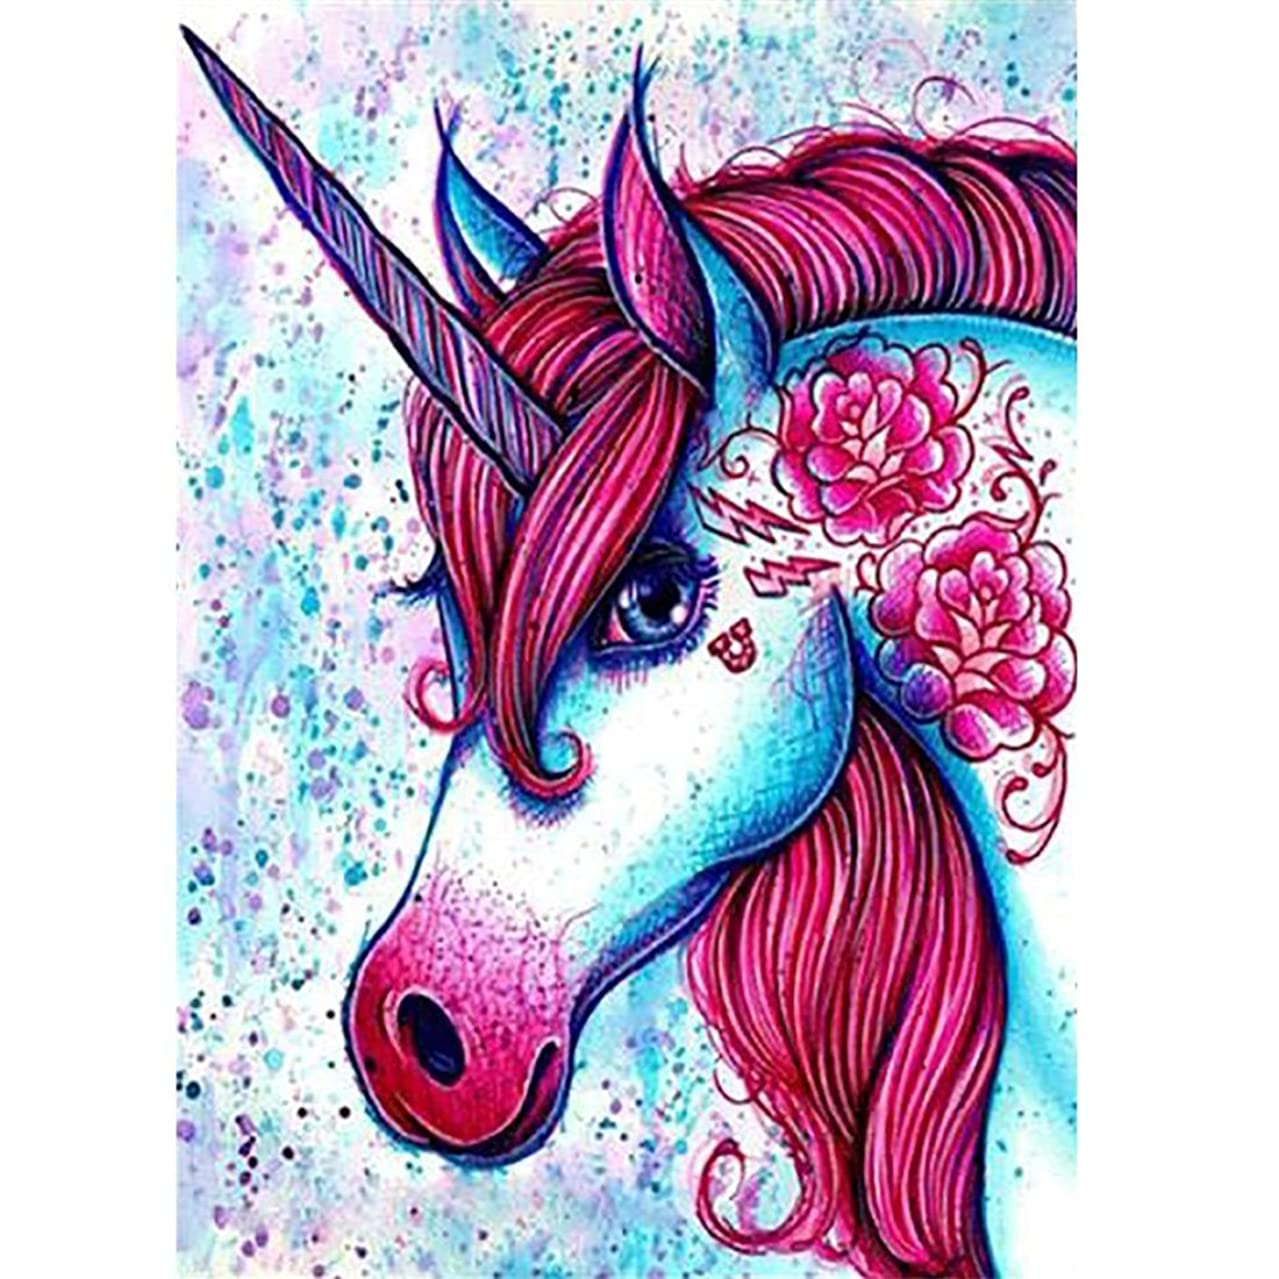 DIY 5D Diamond Painting by Number Kits, Colored Unicorn Full Drill Rhinestone Embroidery Cross Stitch Pictures Arts Craft for Home Wall Decor 11.8 x 15.8 inch